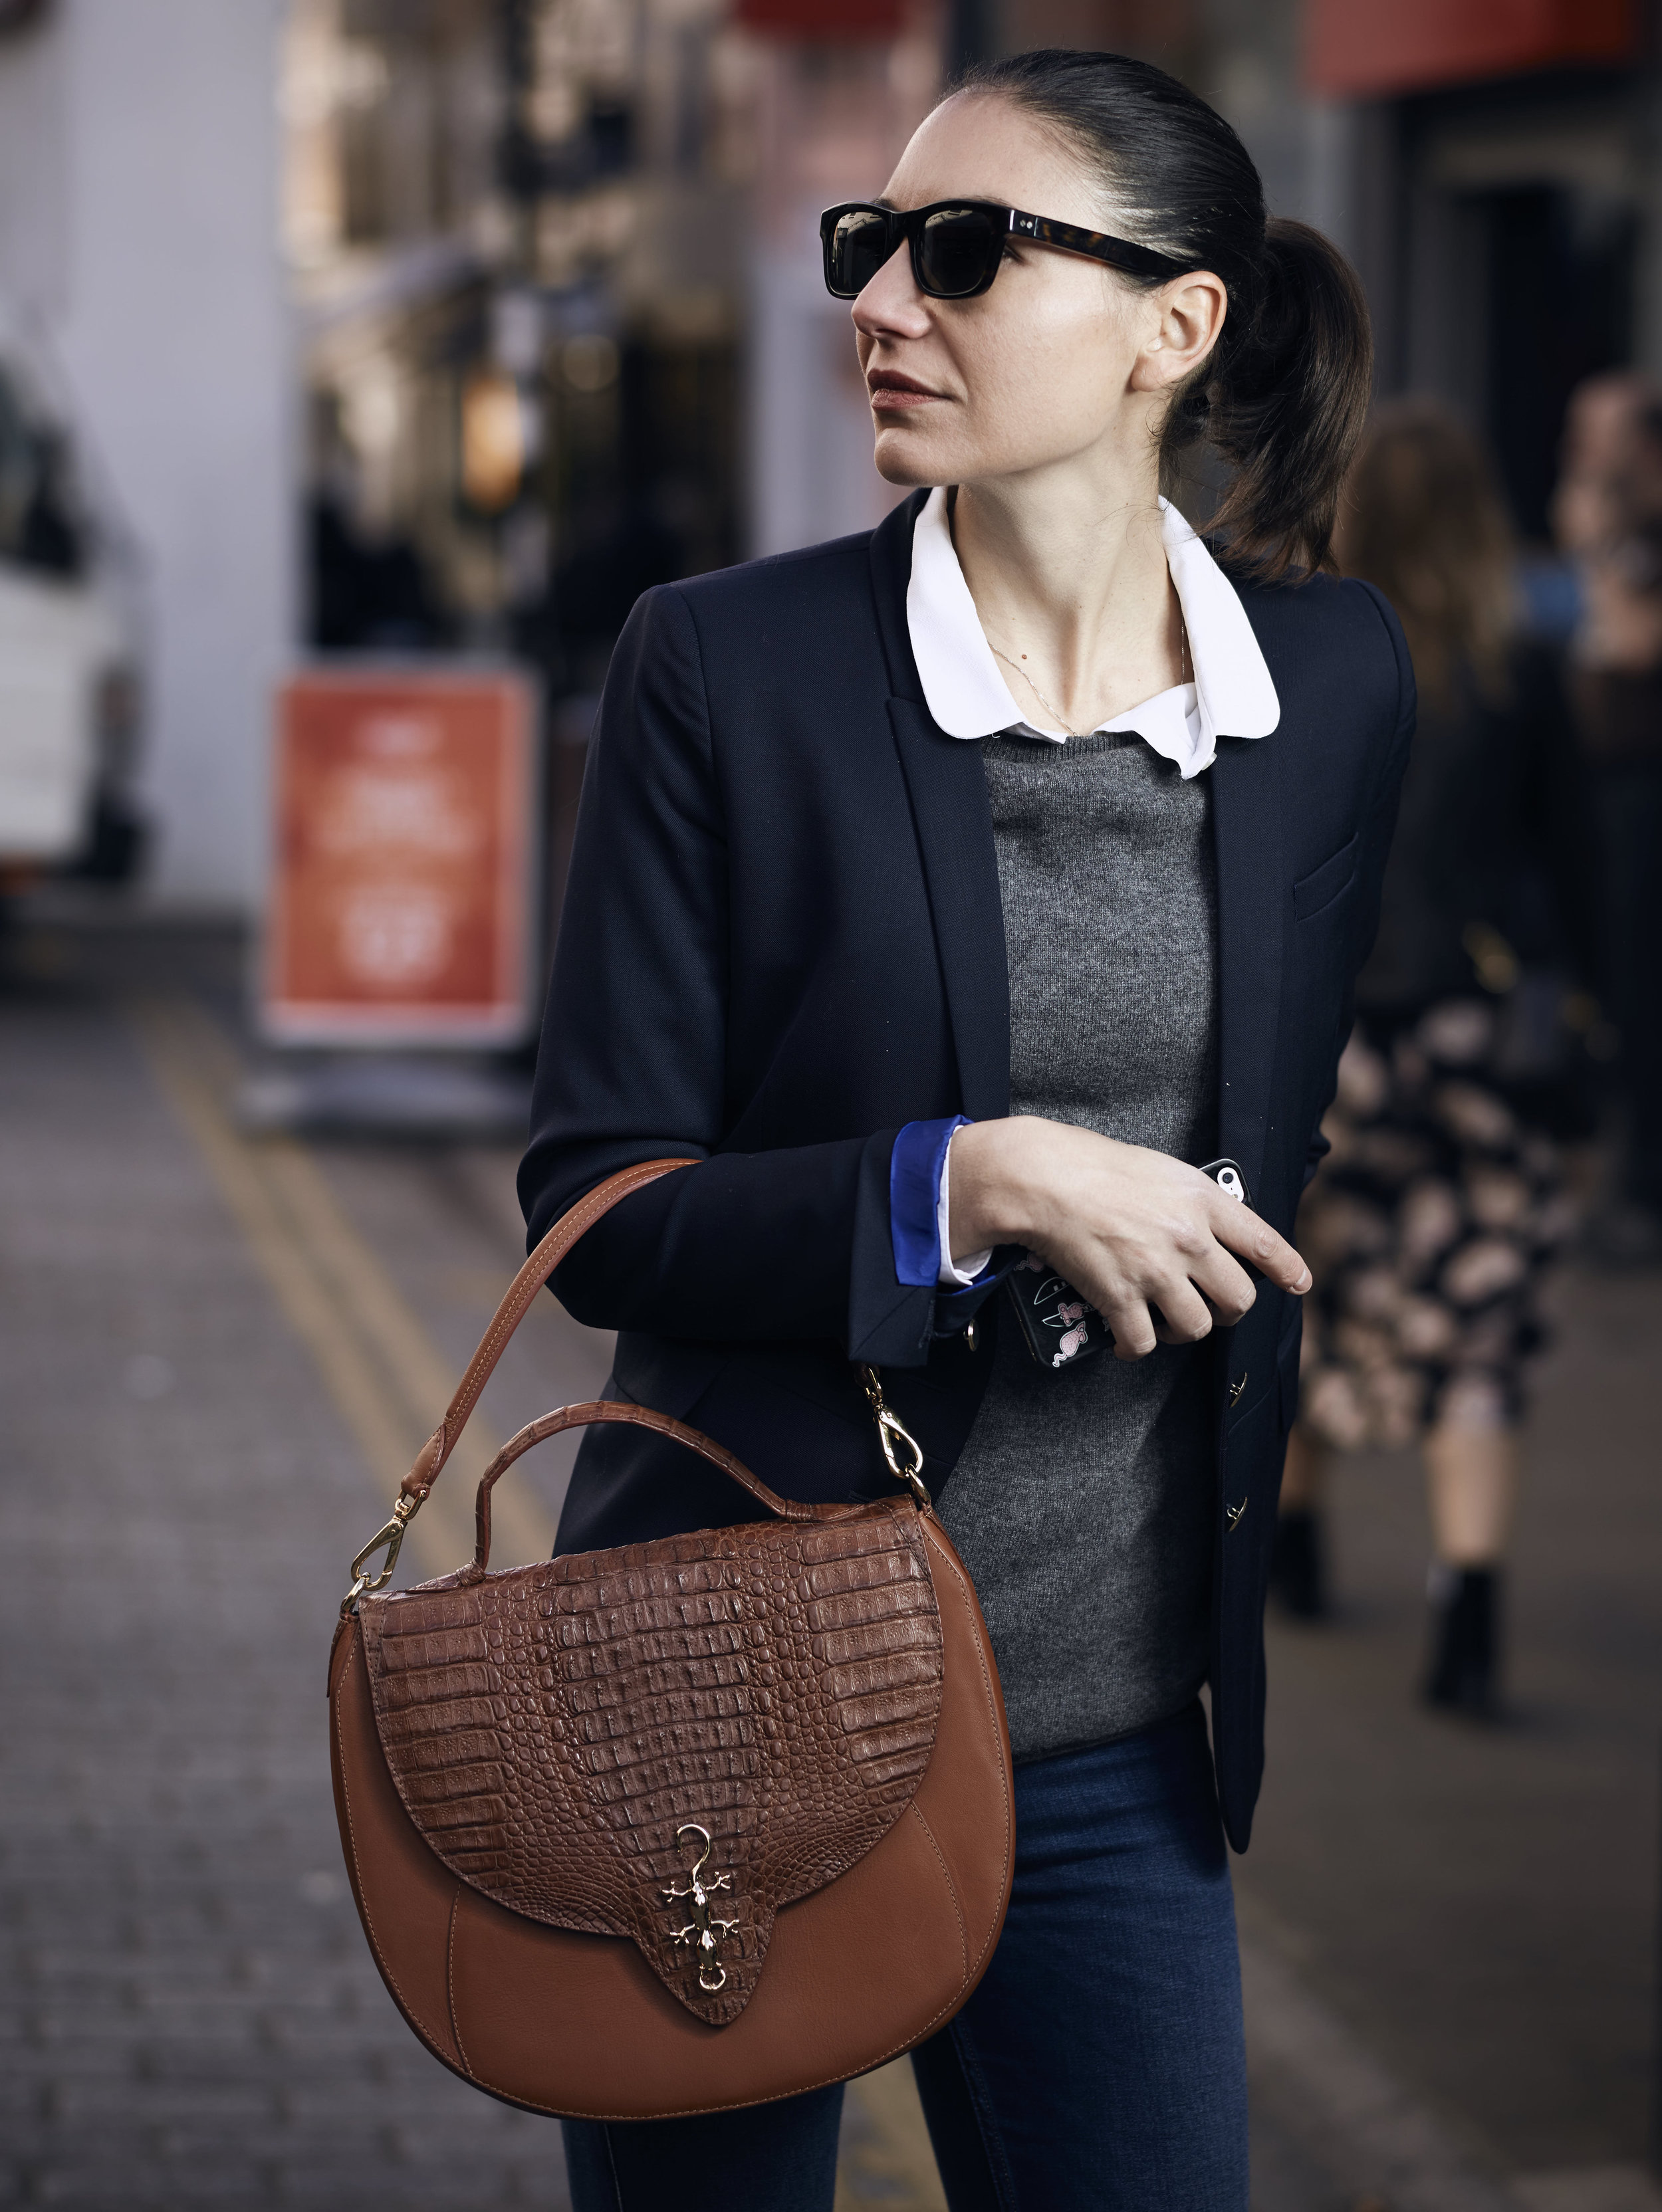 Josephine Saddle Bag sold out in Cognac but still available in  grey  or  burgundy  at 60% off (£260).